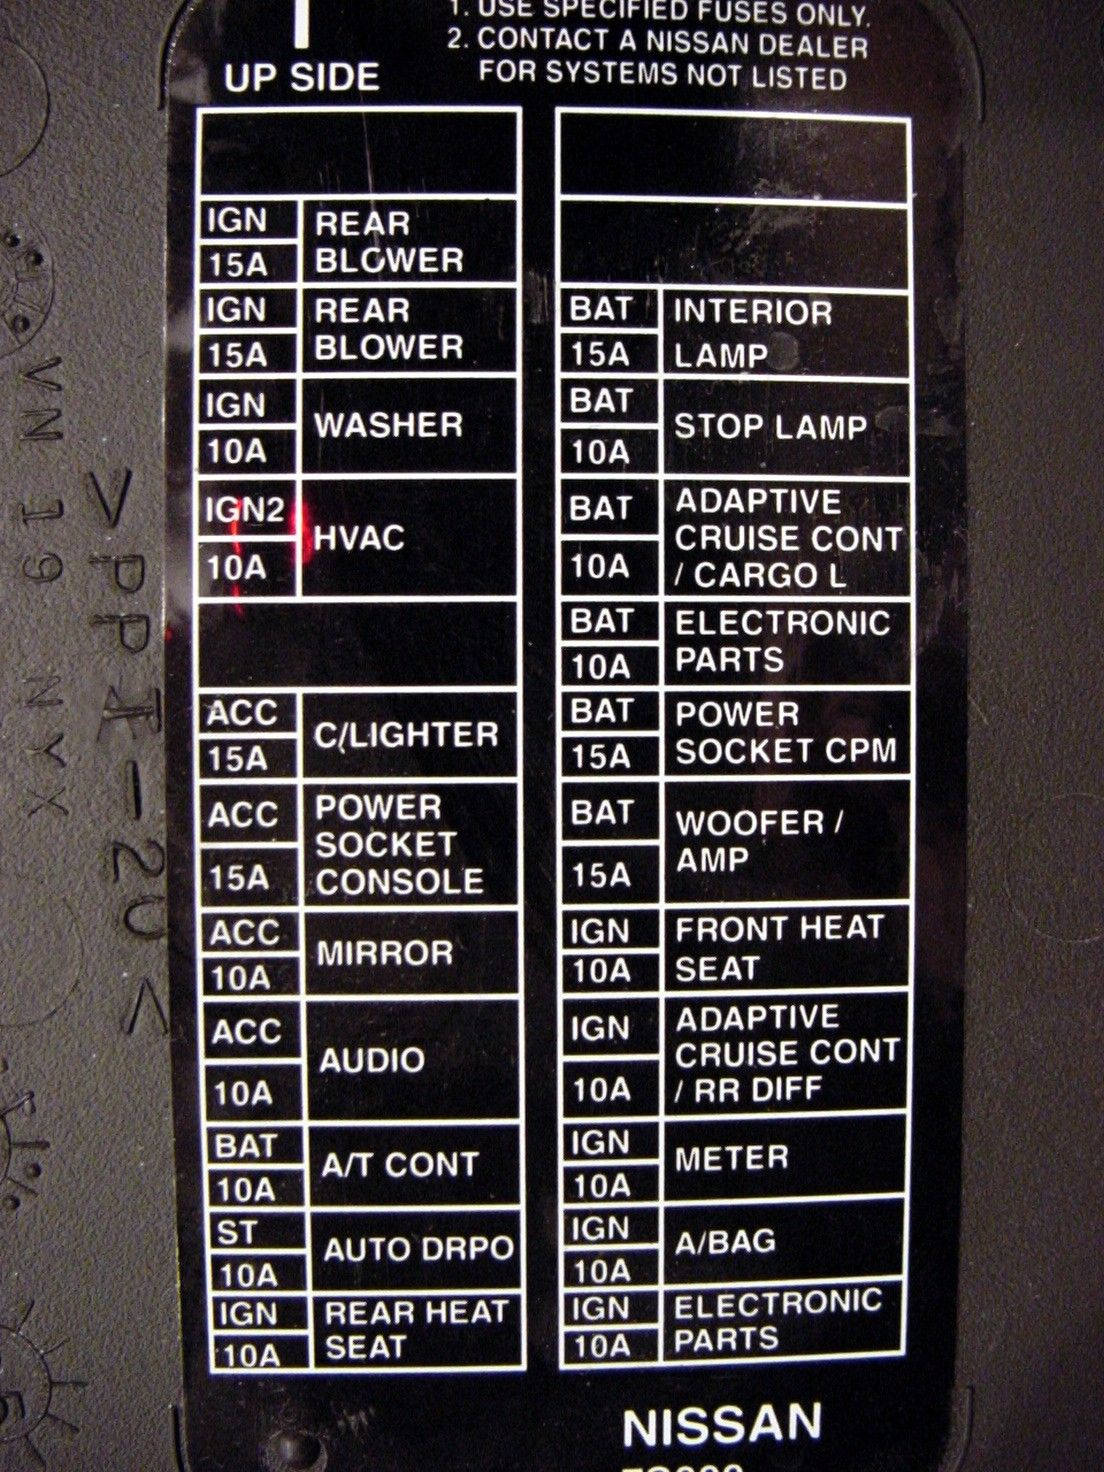 hight resolution of 2005 nissan armada fuse diagram wiring library nissan armada lights 2004 fuse diagram please help nissan